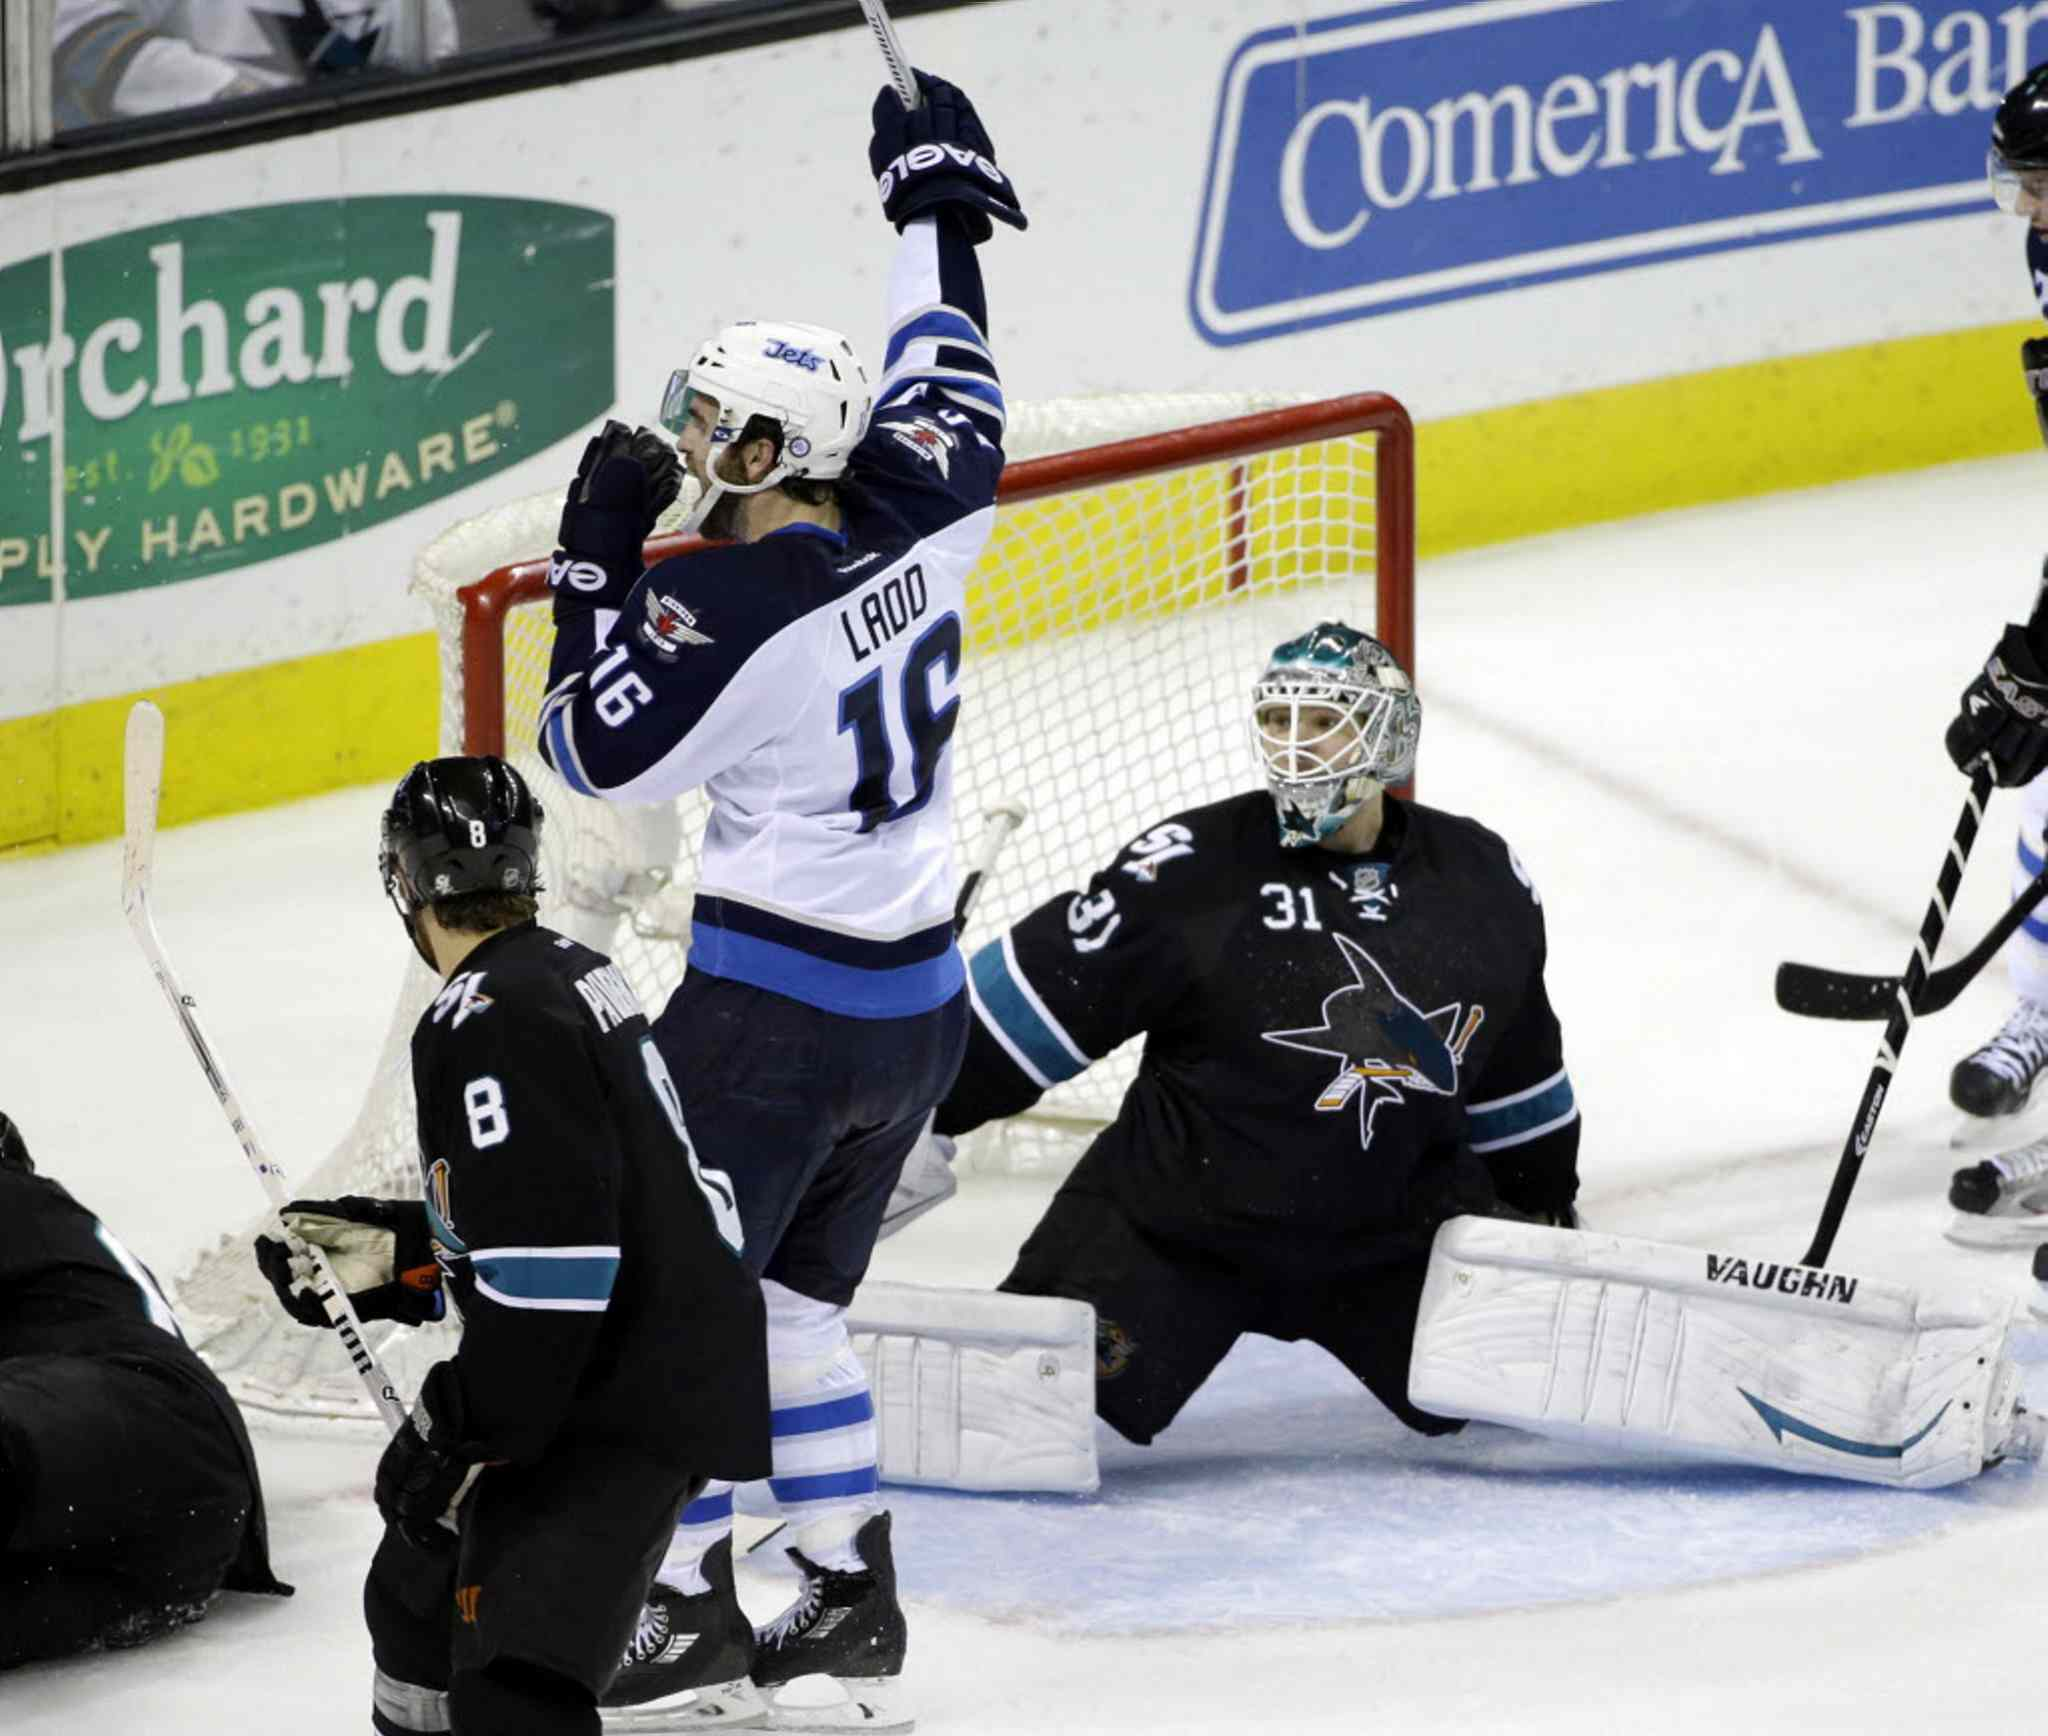 Winnipeg Jets' Andrew Ladd (16) celebrates a goal by teammate Tobias Enstrom, next to San Jose Sharks goalie Antti Niemi (31), during the third period.